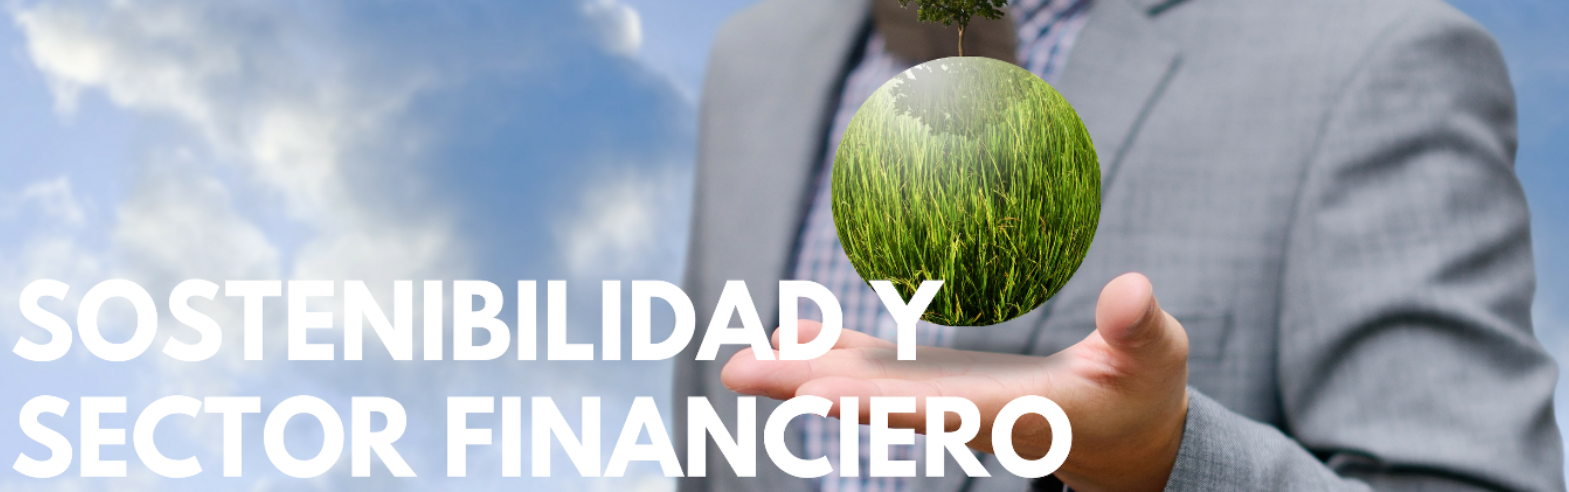 Sostenibilidad sector financiero